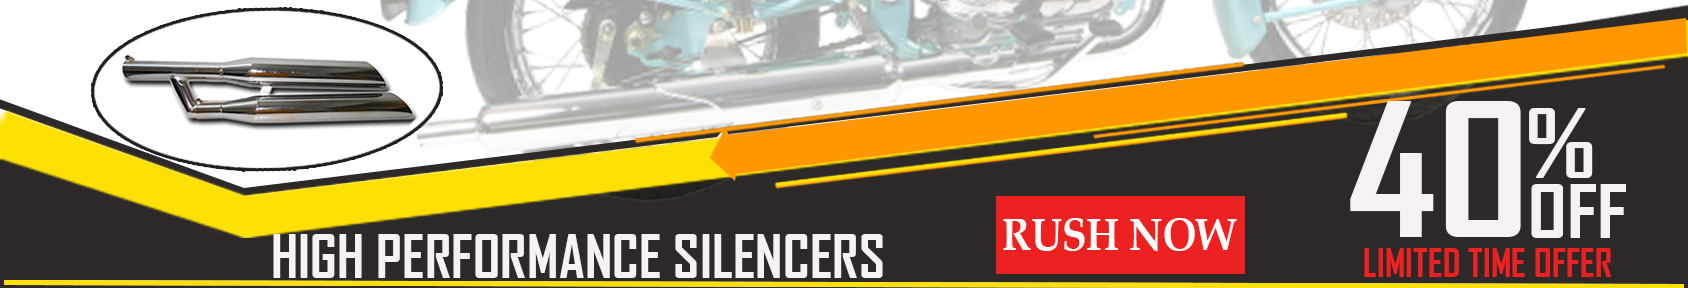 Special offers on Genuine Motorcycle Spare Parts And Accessories - 40% off on high performance silencer